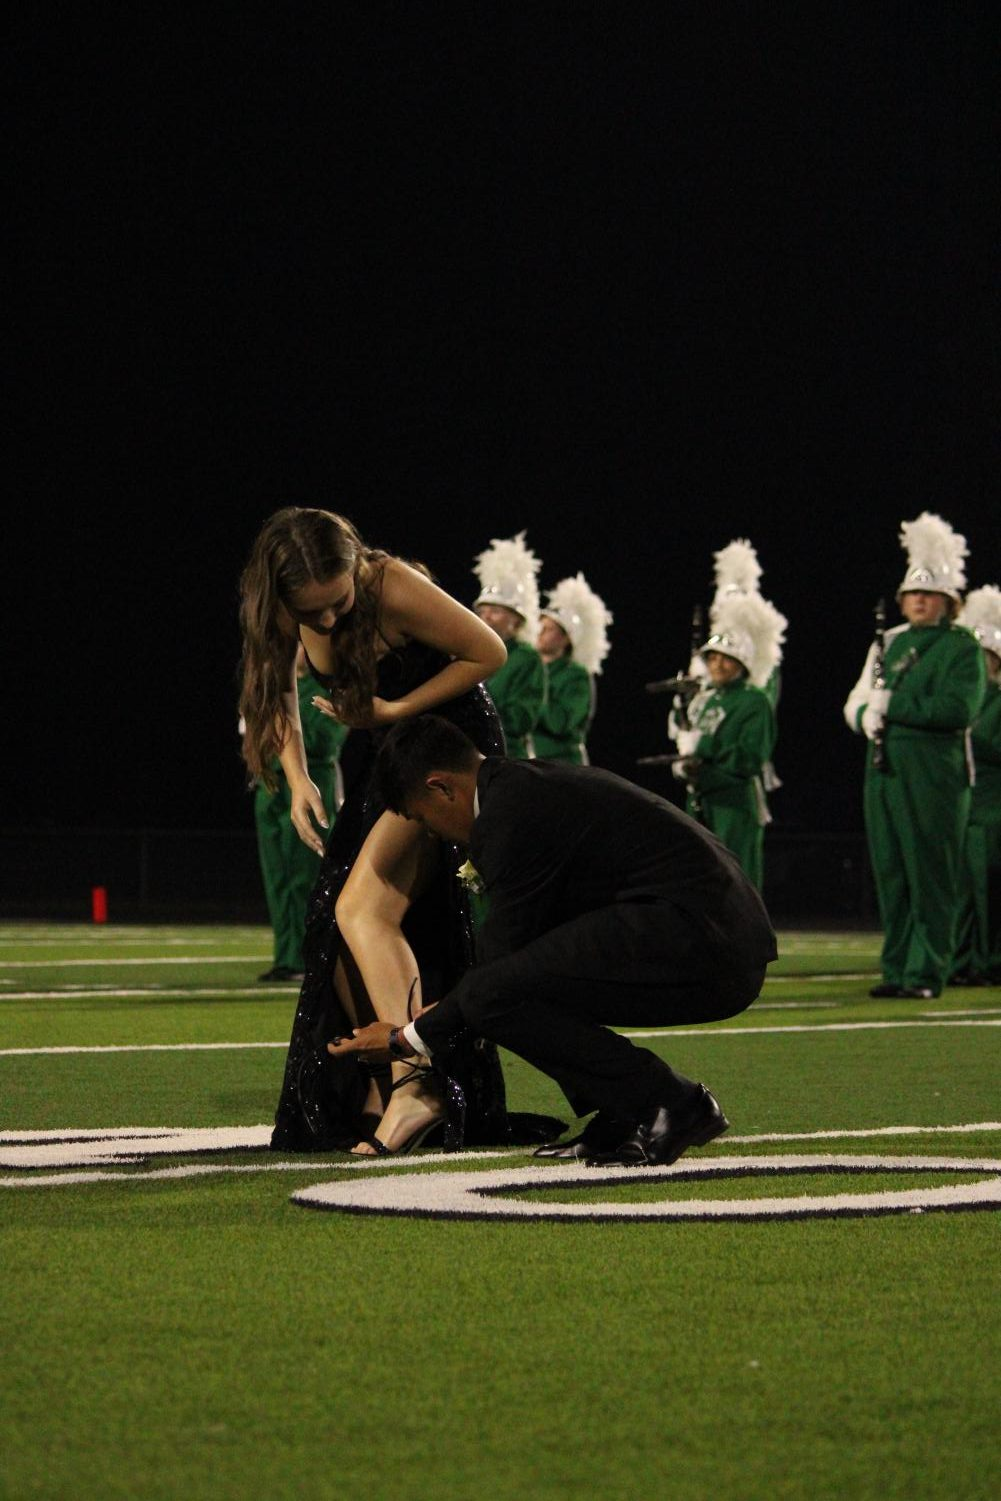 Homecoming+game+%28Photos+by+Alyssa+Lai%29